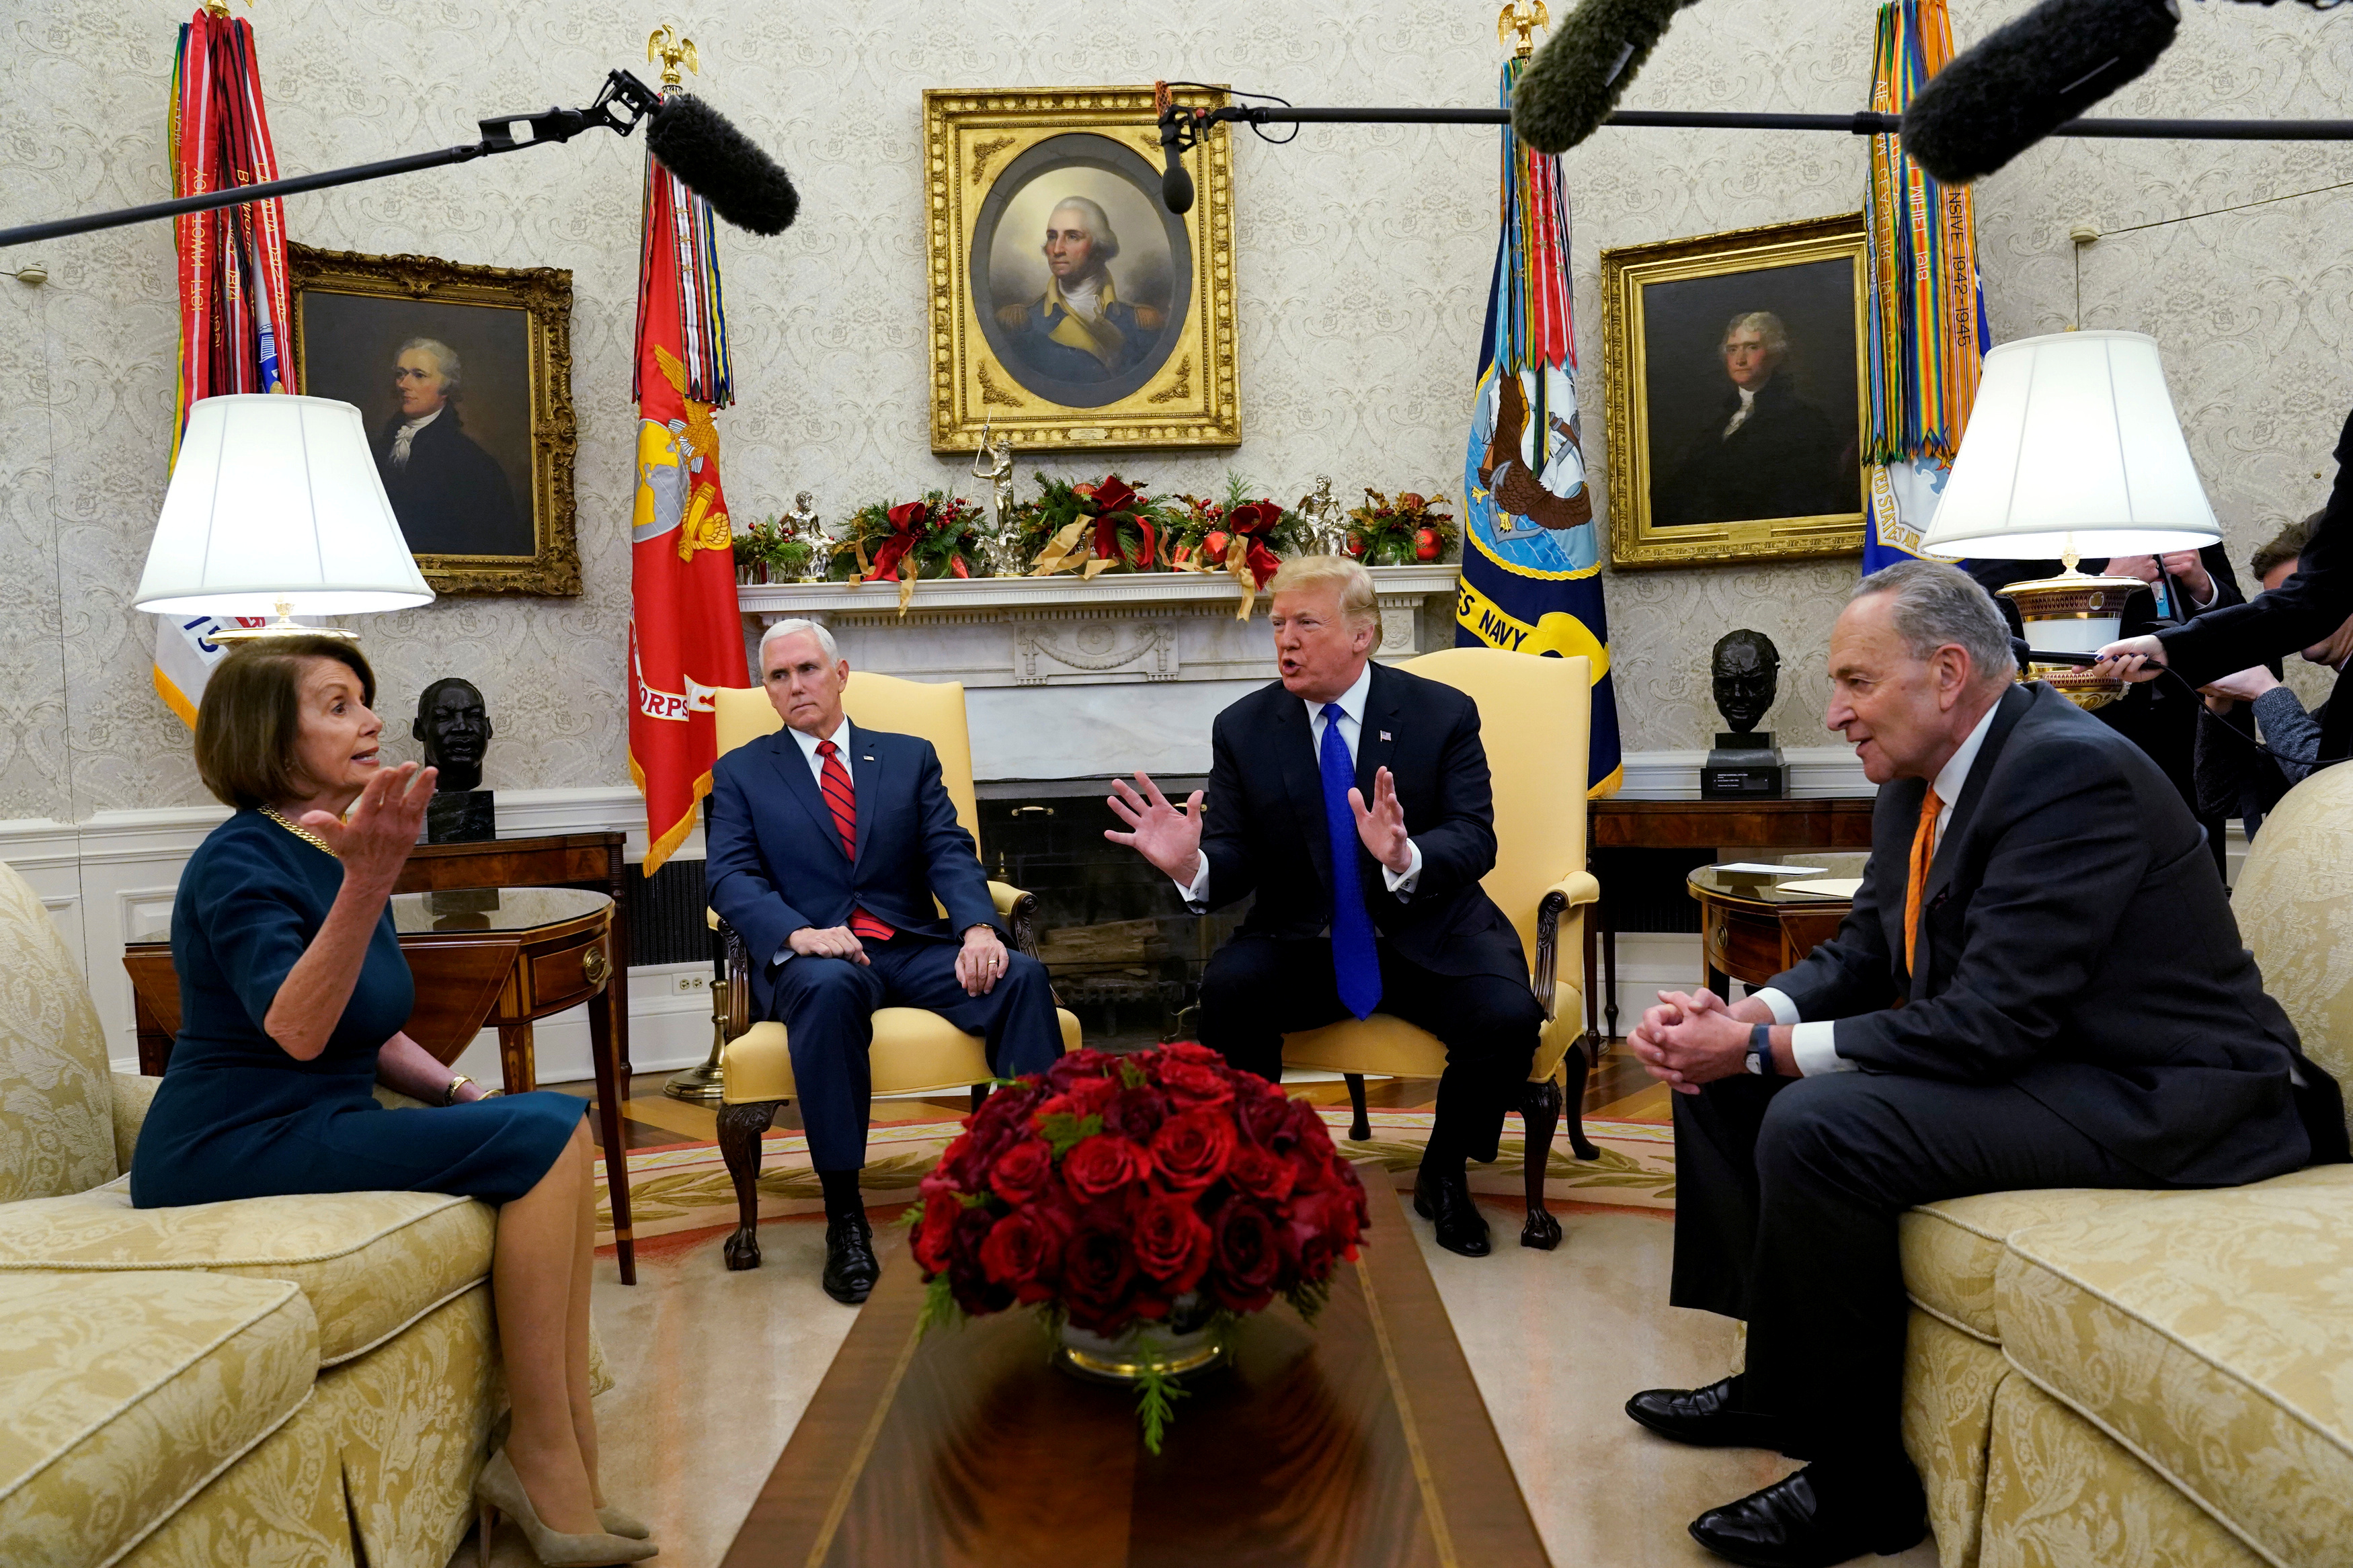 President Donald Trump speaks next to Vice President Mike Pence while meeting with Senate Democratic Leader Chuck Schumer and House Minority Leader Nancy Pelosi at the White House in December 11, 2018. REUTERS/Kevin Lamarque